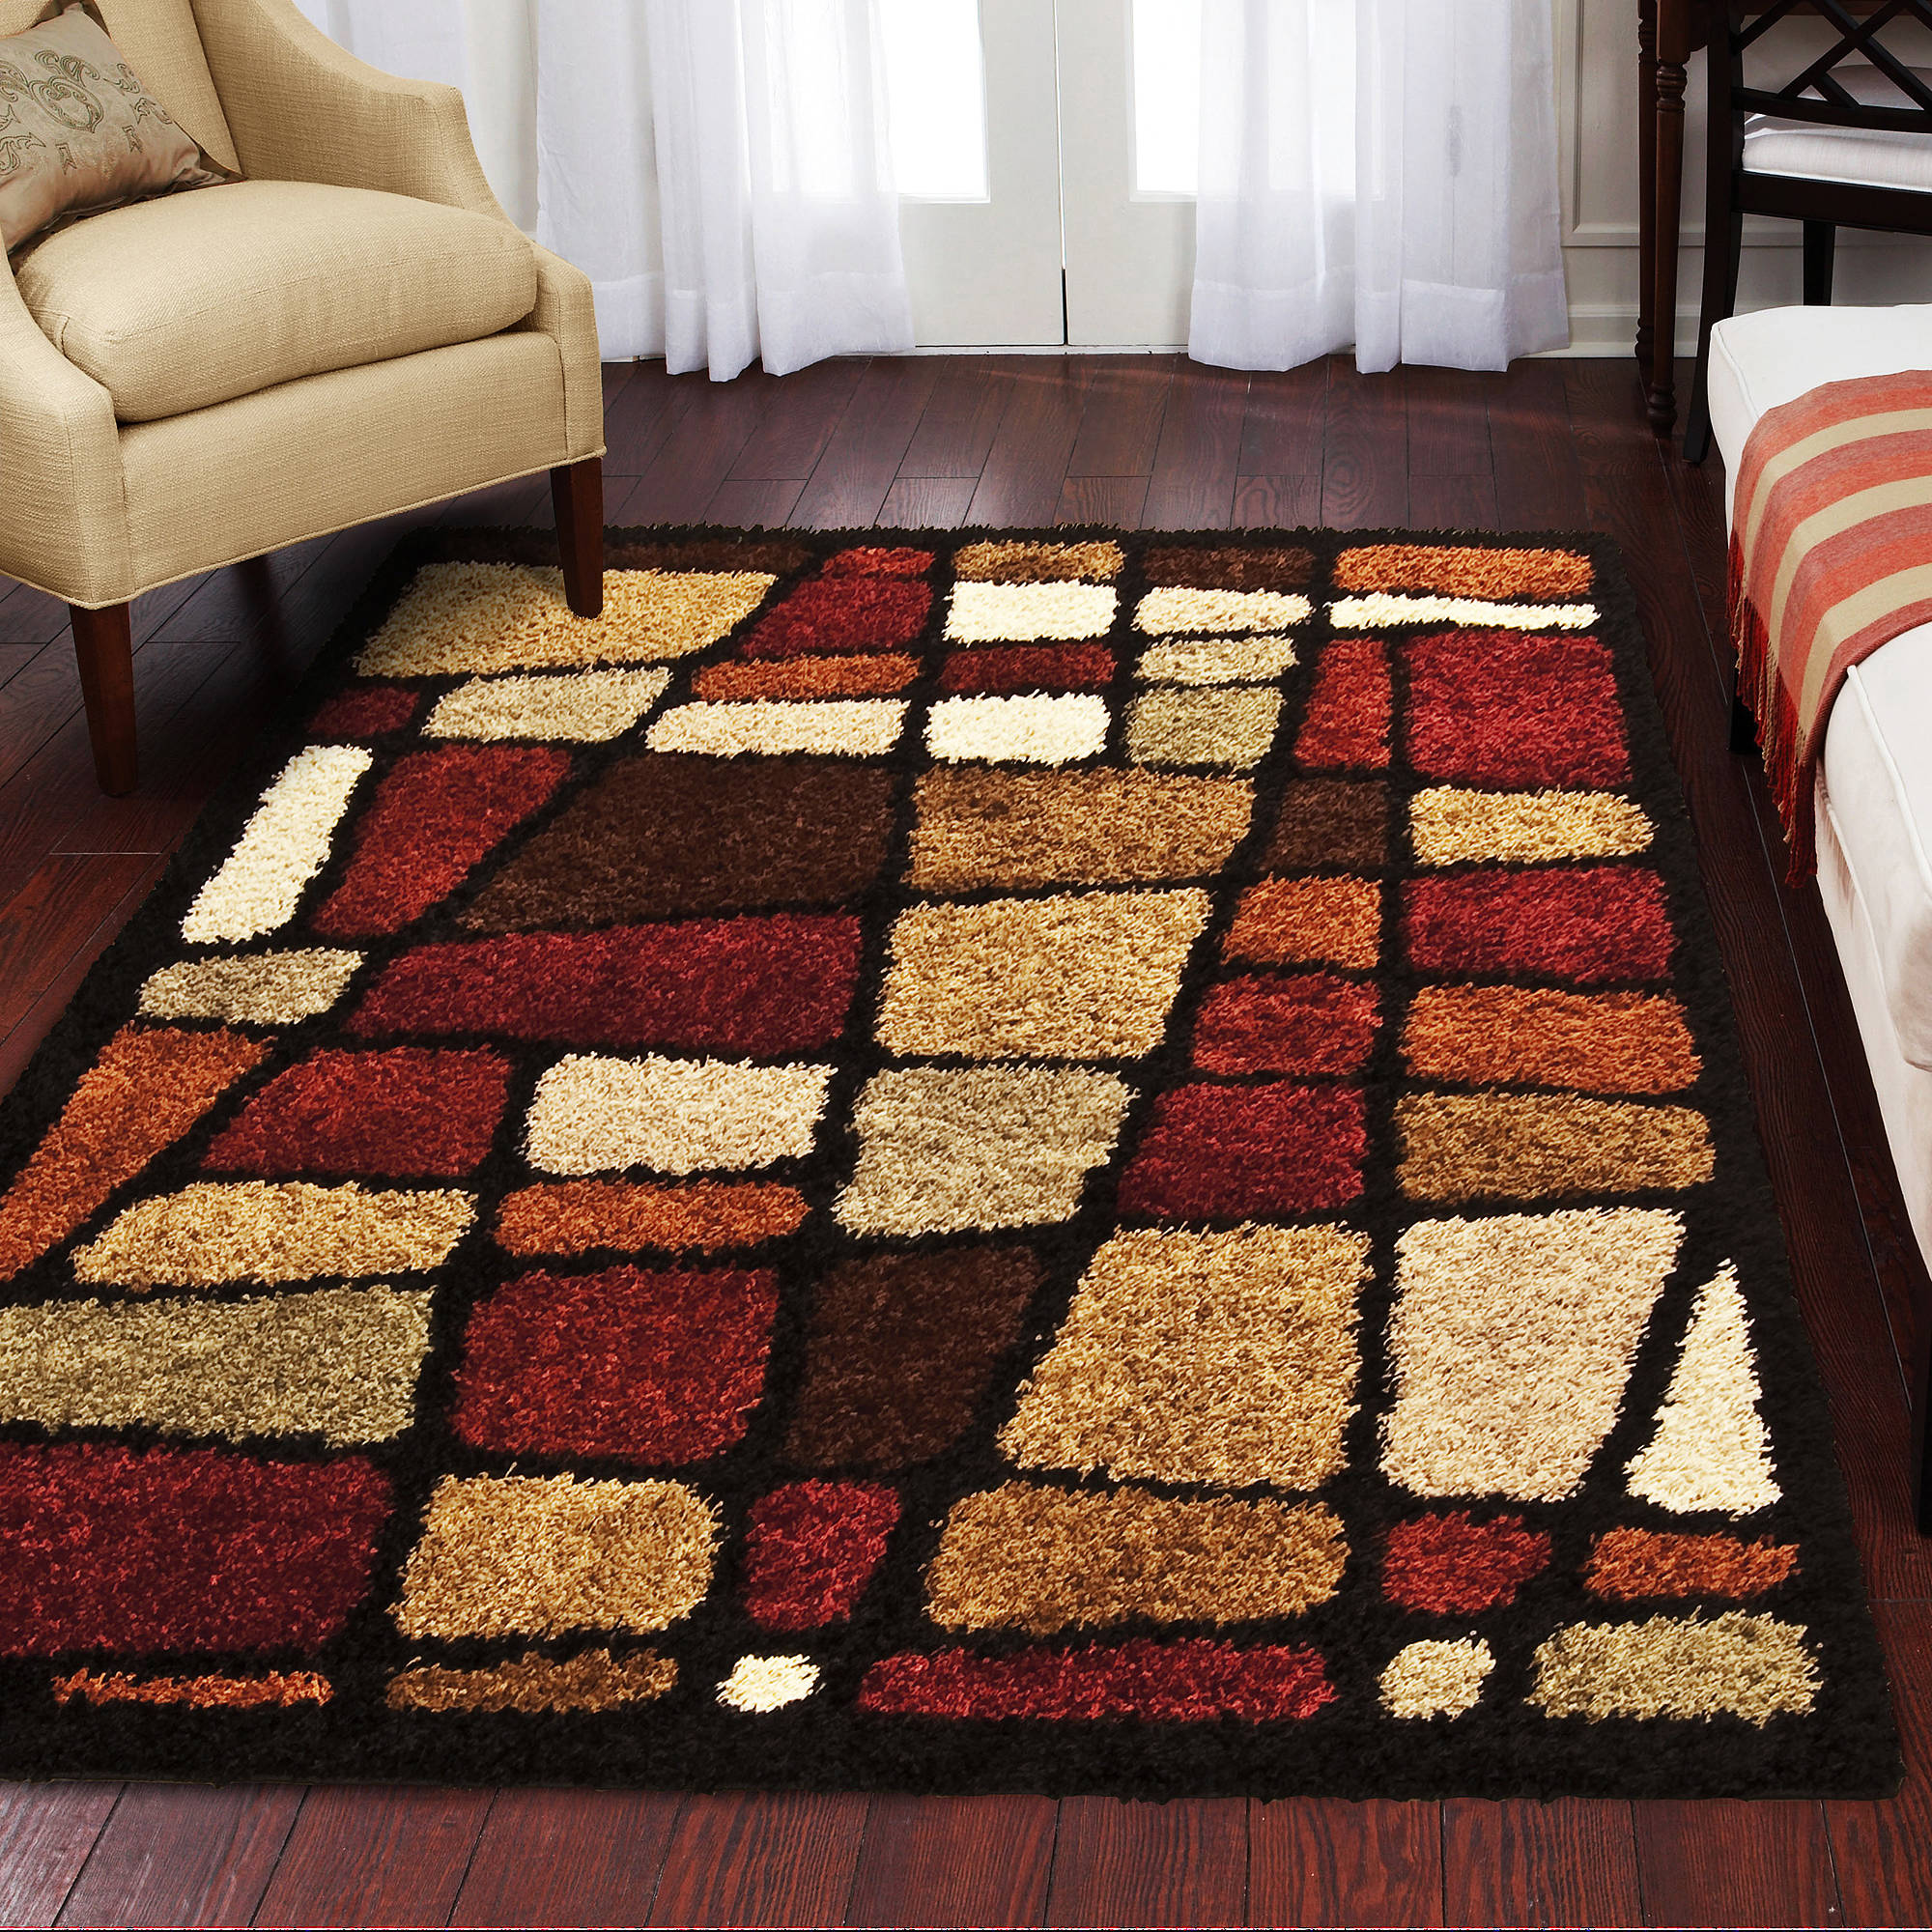 Orian Rugs Shag Streetfair Multi-Colored Area Rug or Runner